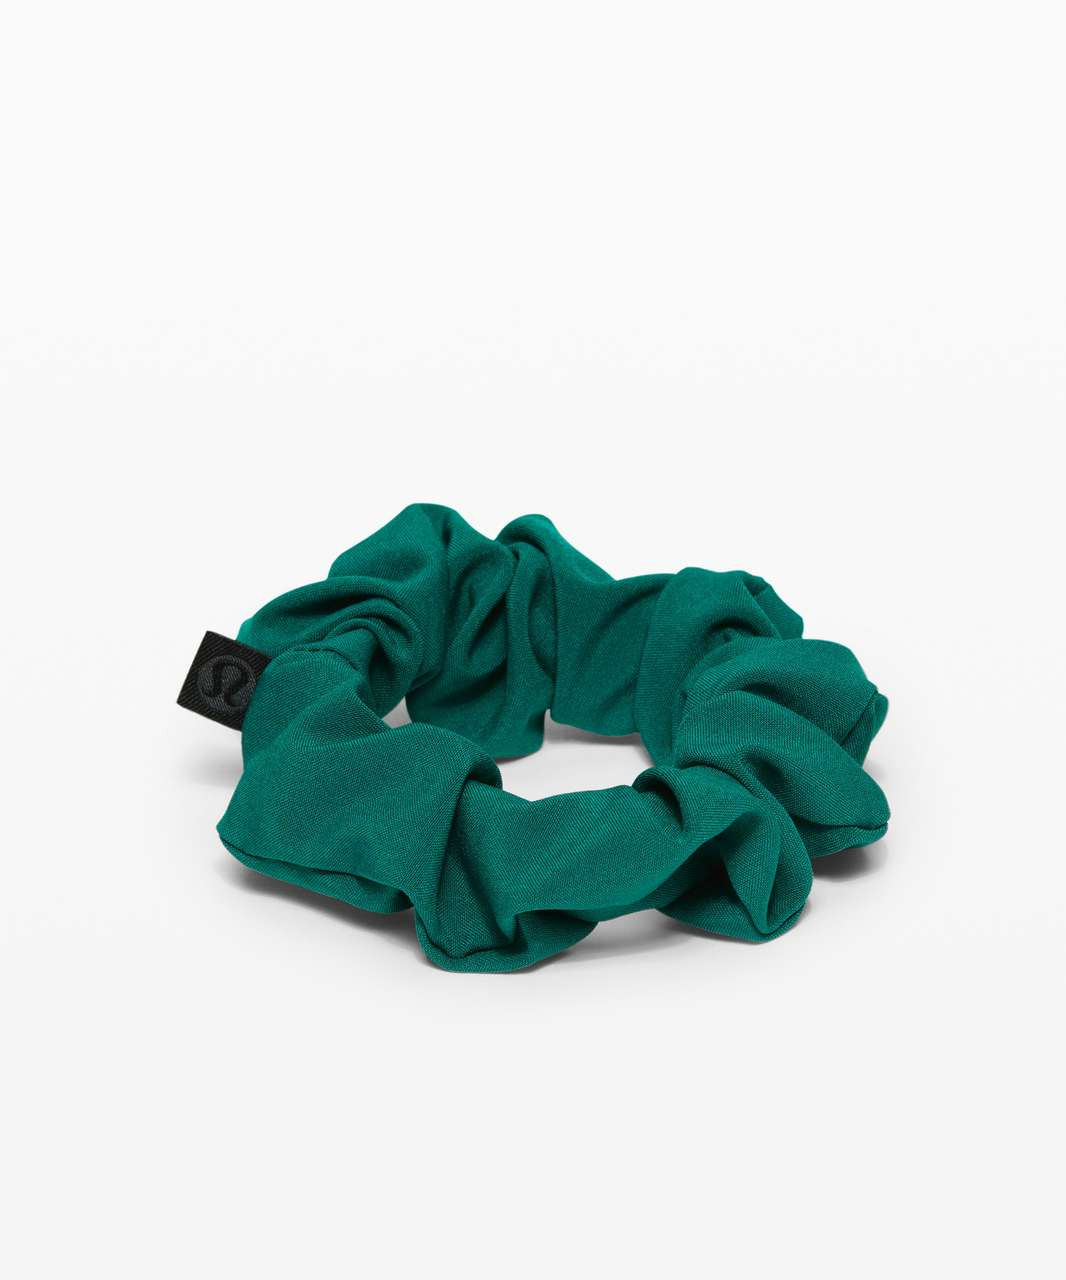 Lululemon Uplifting Scrunchie - Teal Green